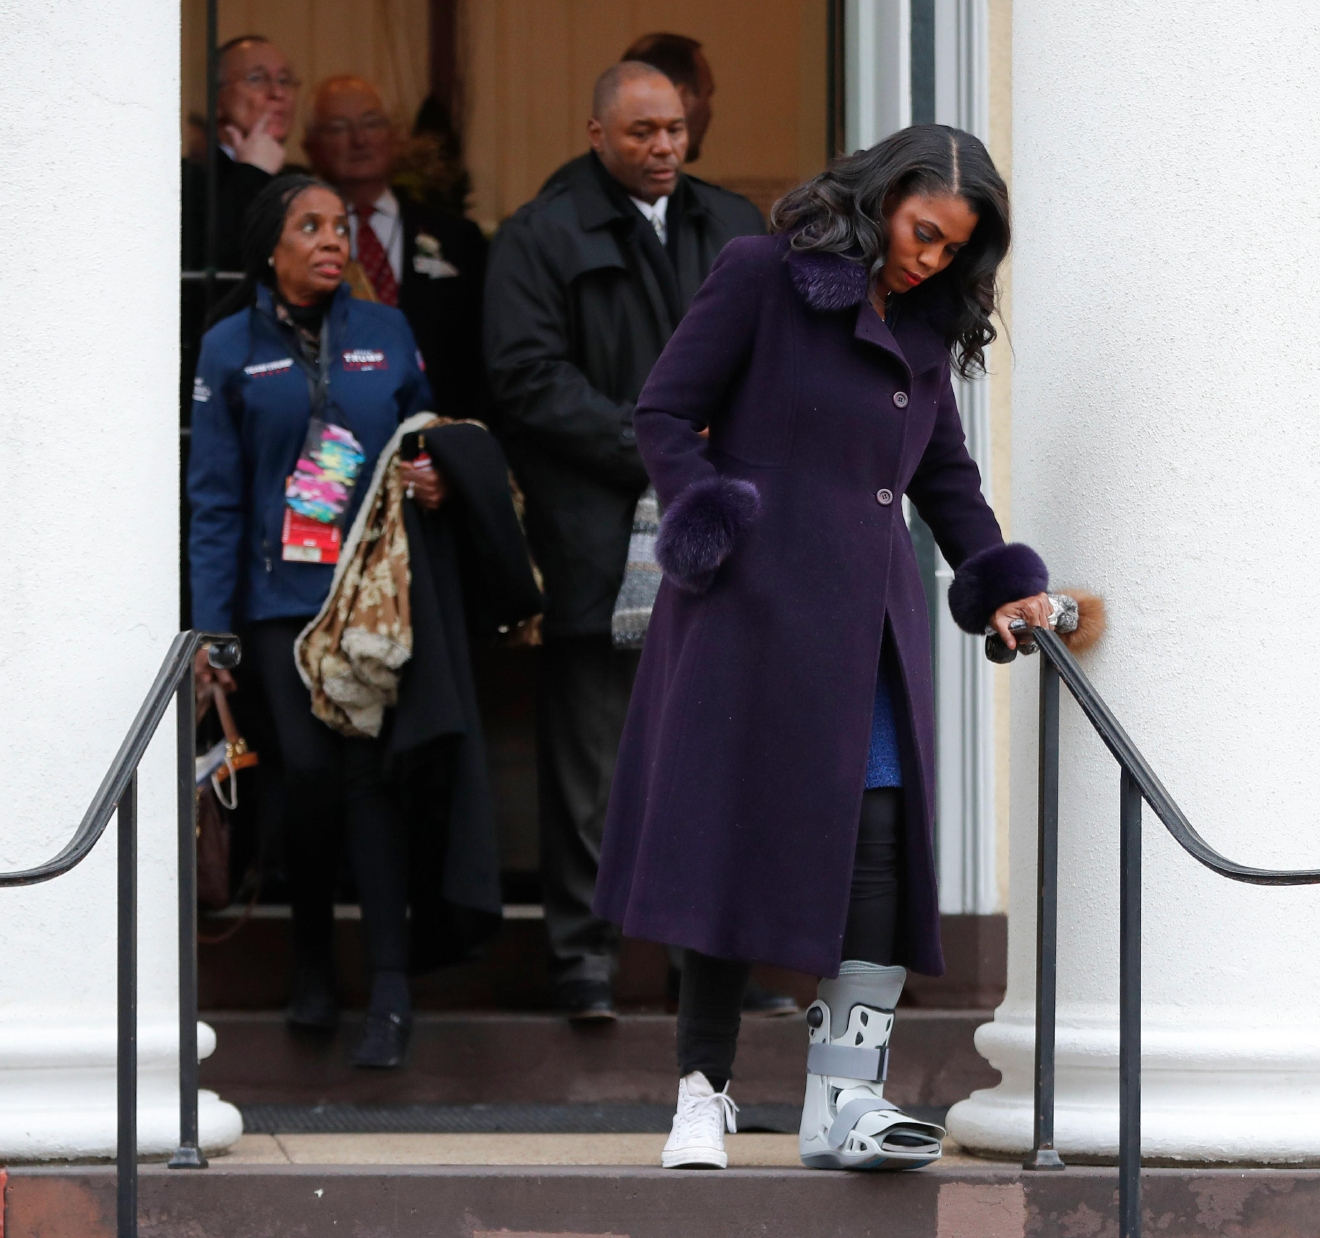 Omarosa Manigault walks down the stairs after attending church service at St. John's Episcopal Church across from the White House in Washington, Friday, Jan. 20, 2017. (AP Photo/Pablo Martinez Monsivais)